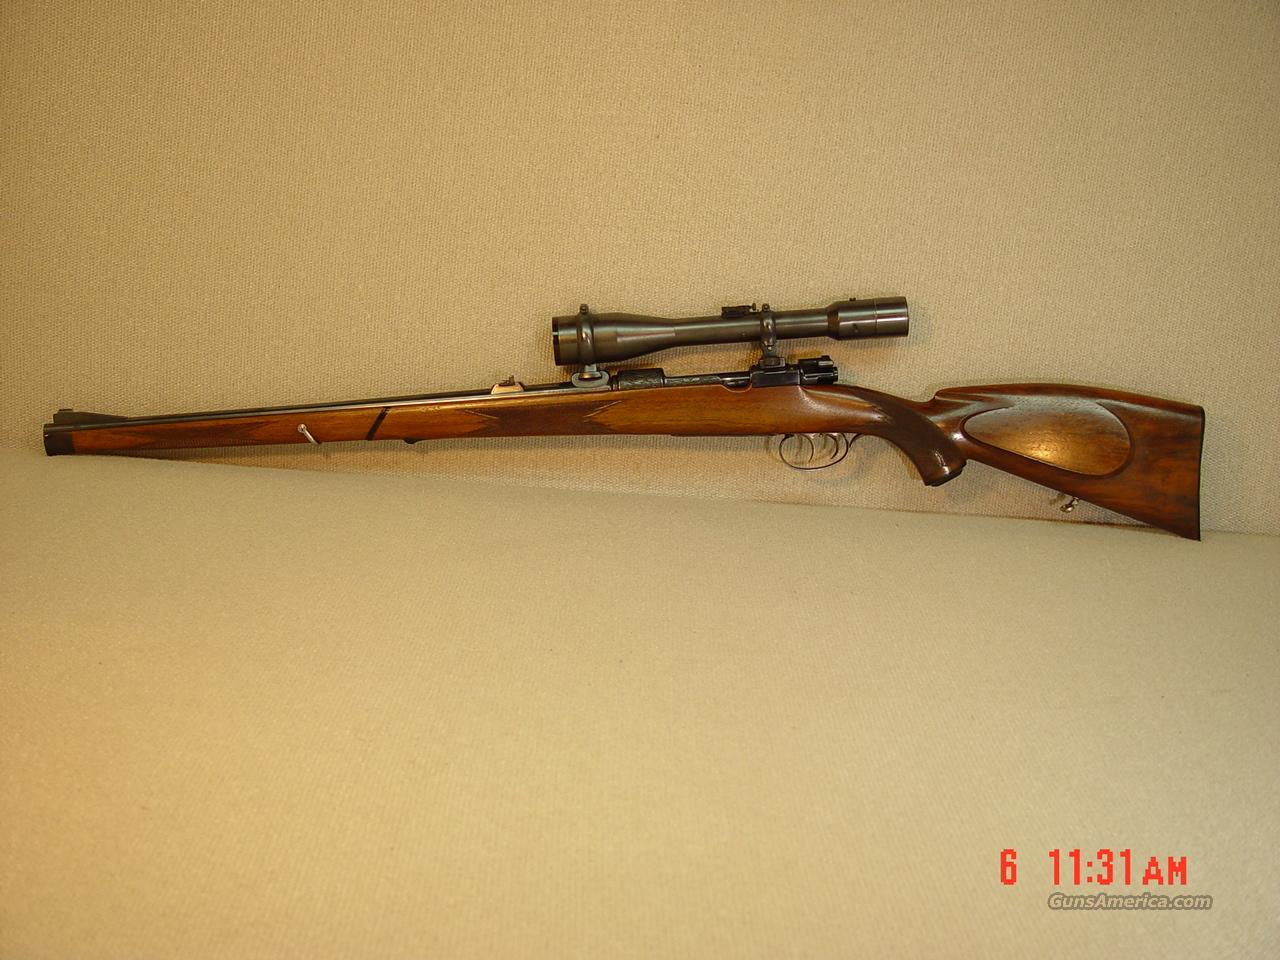 HERMANN WEIHRAUCH CUSTOM Model 98 with SCOPE  Guns > Rifles > Custom Rifles > Bolt Action